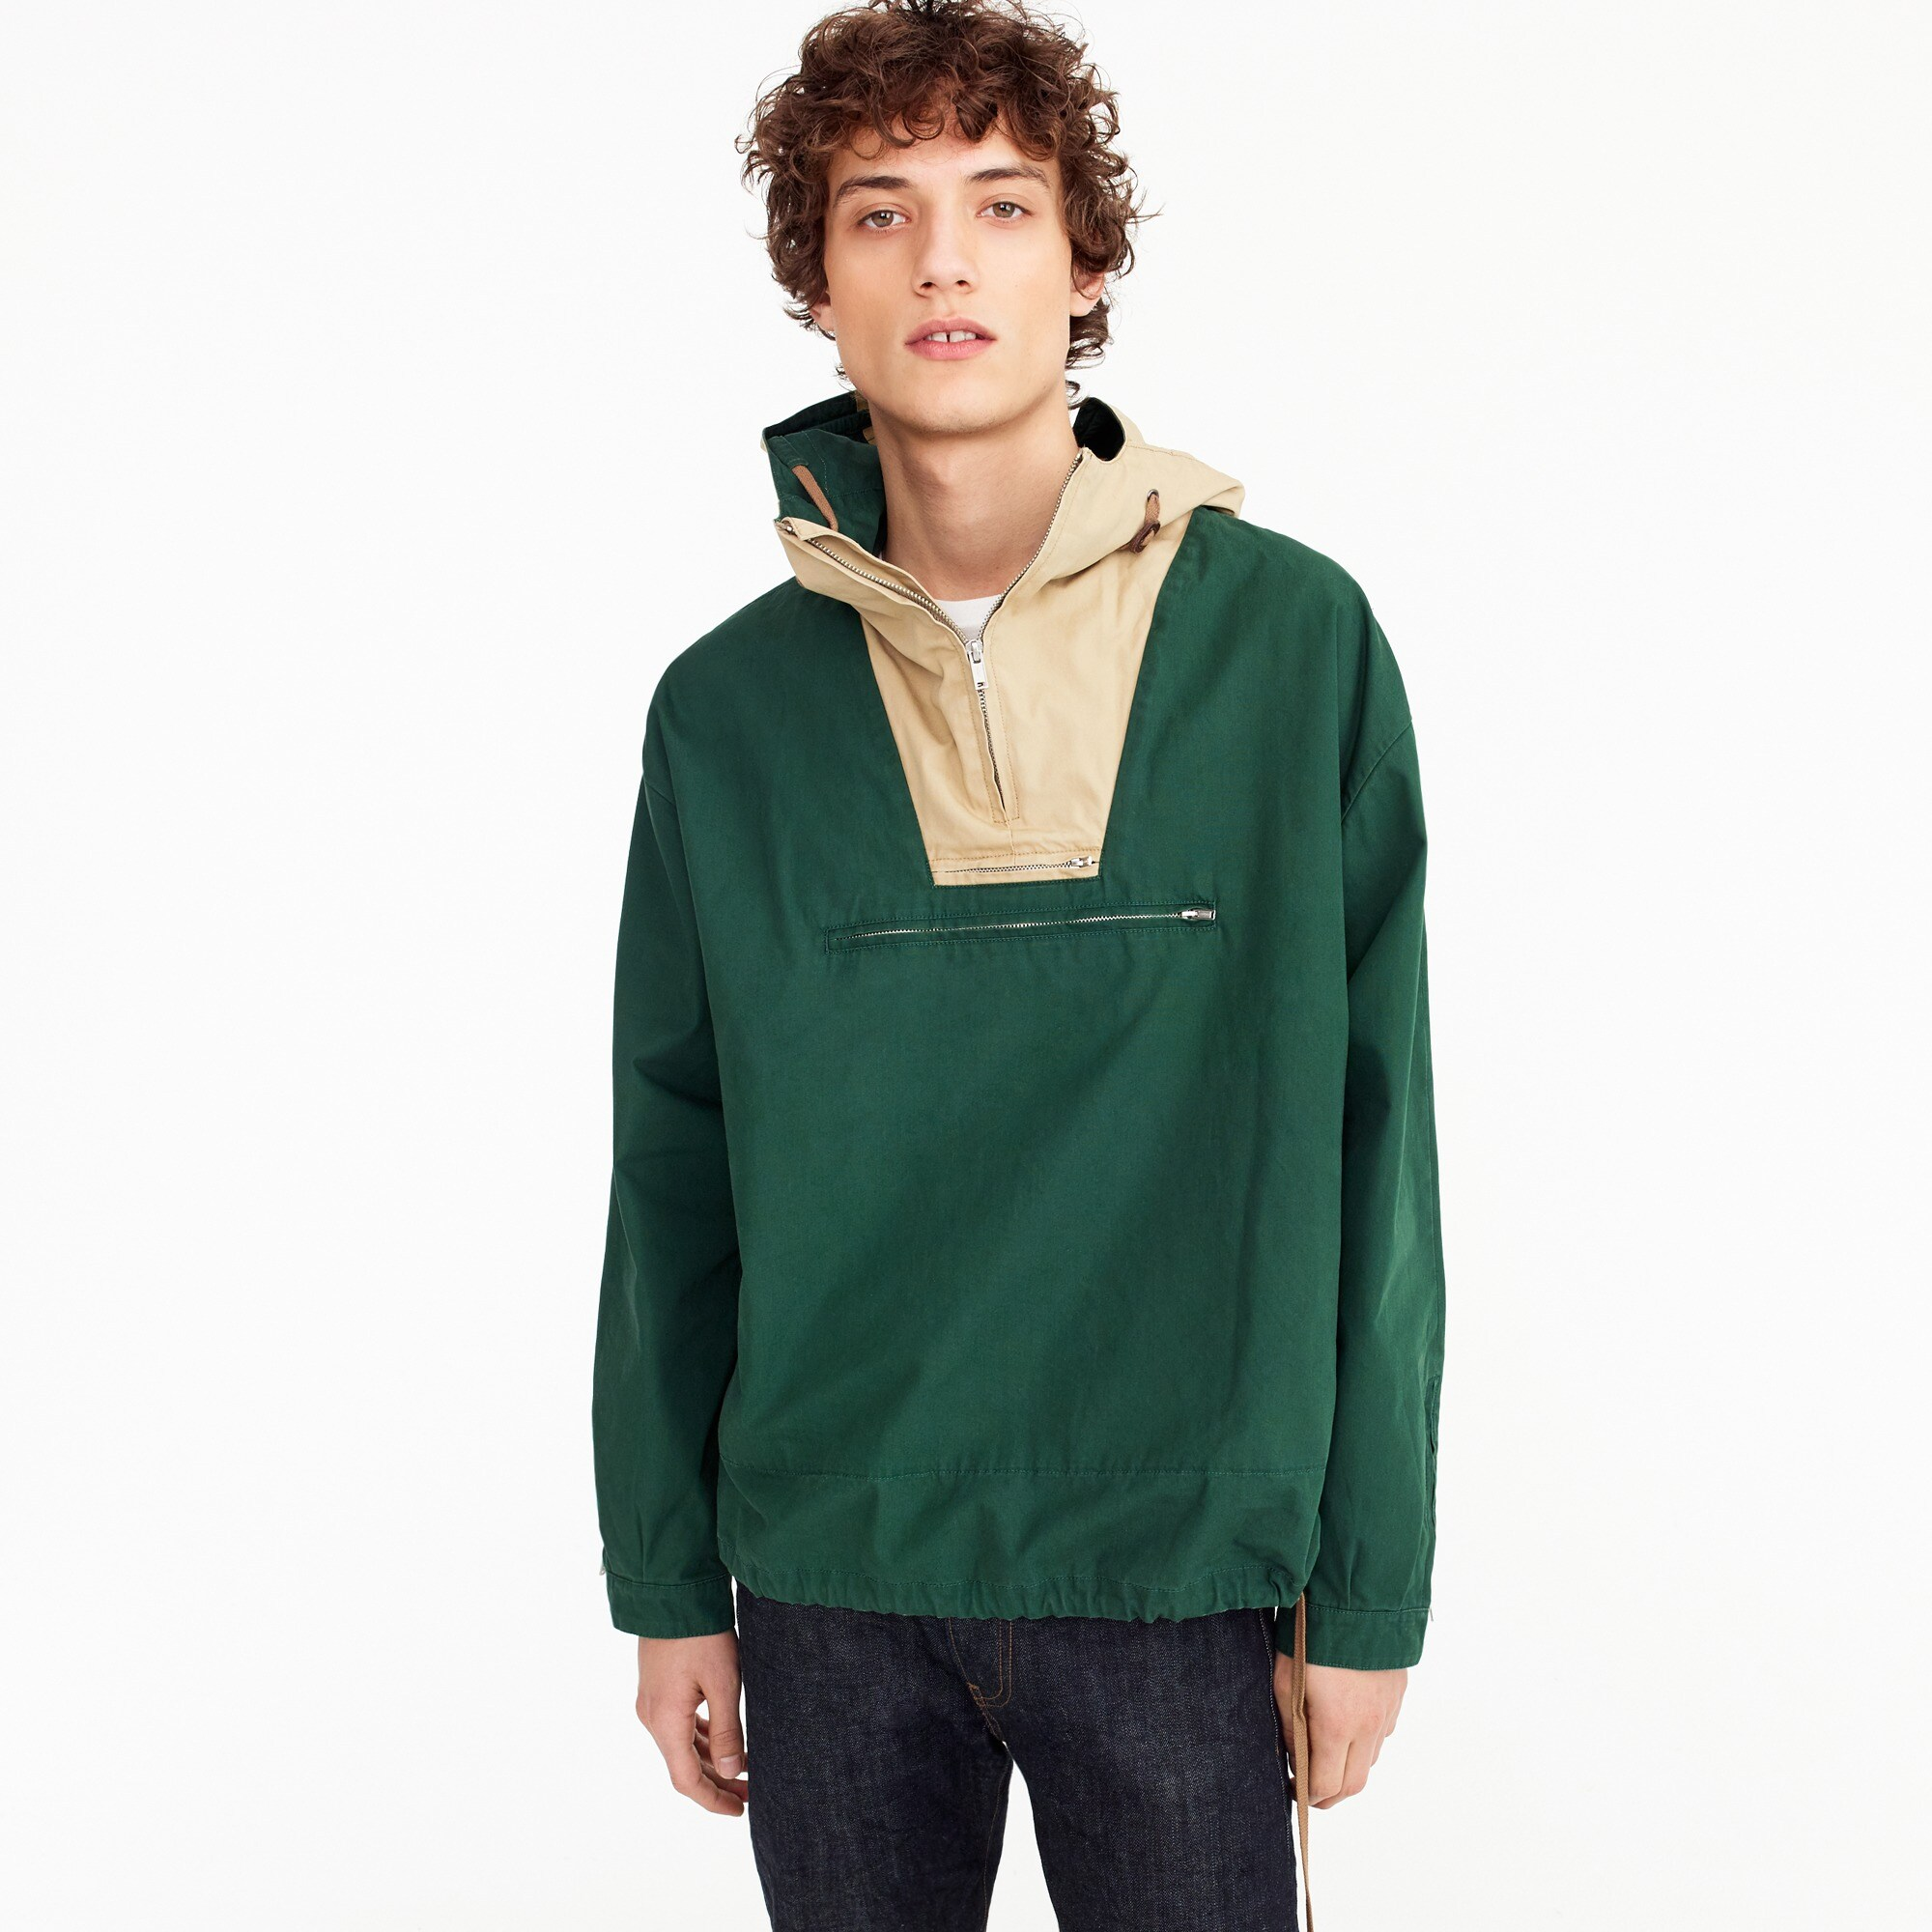 mens Unisex 1989 side-zip cotton anorak